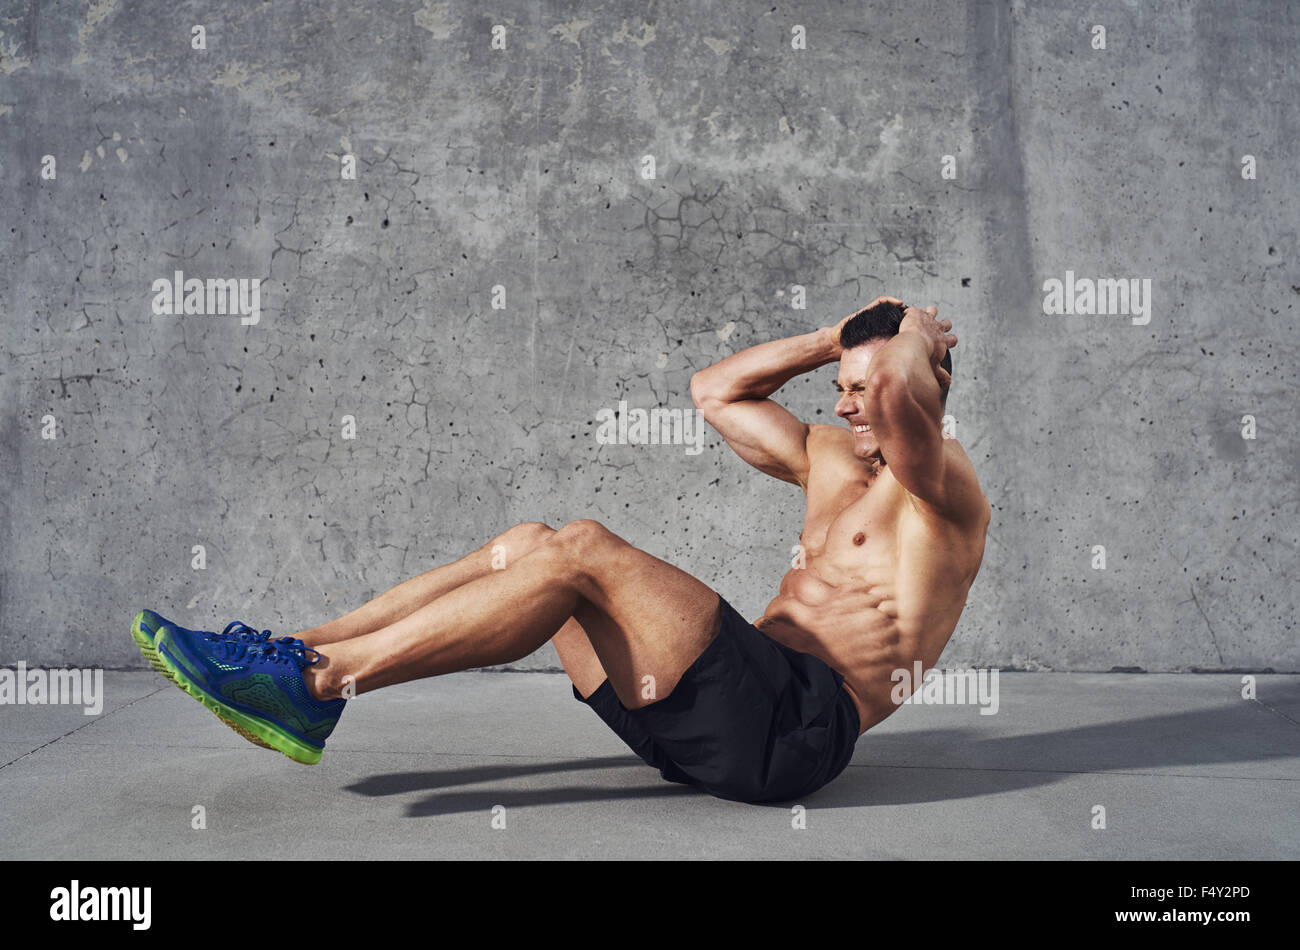 Fitness model exercising sit ups and crunches. Muscular well build, toned body with six pack sweating. Copy space - Stock Image